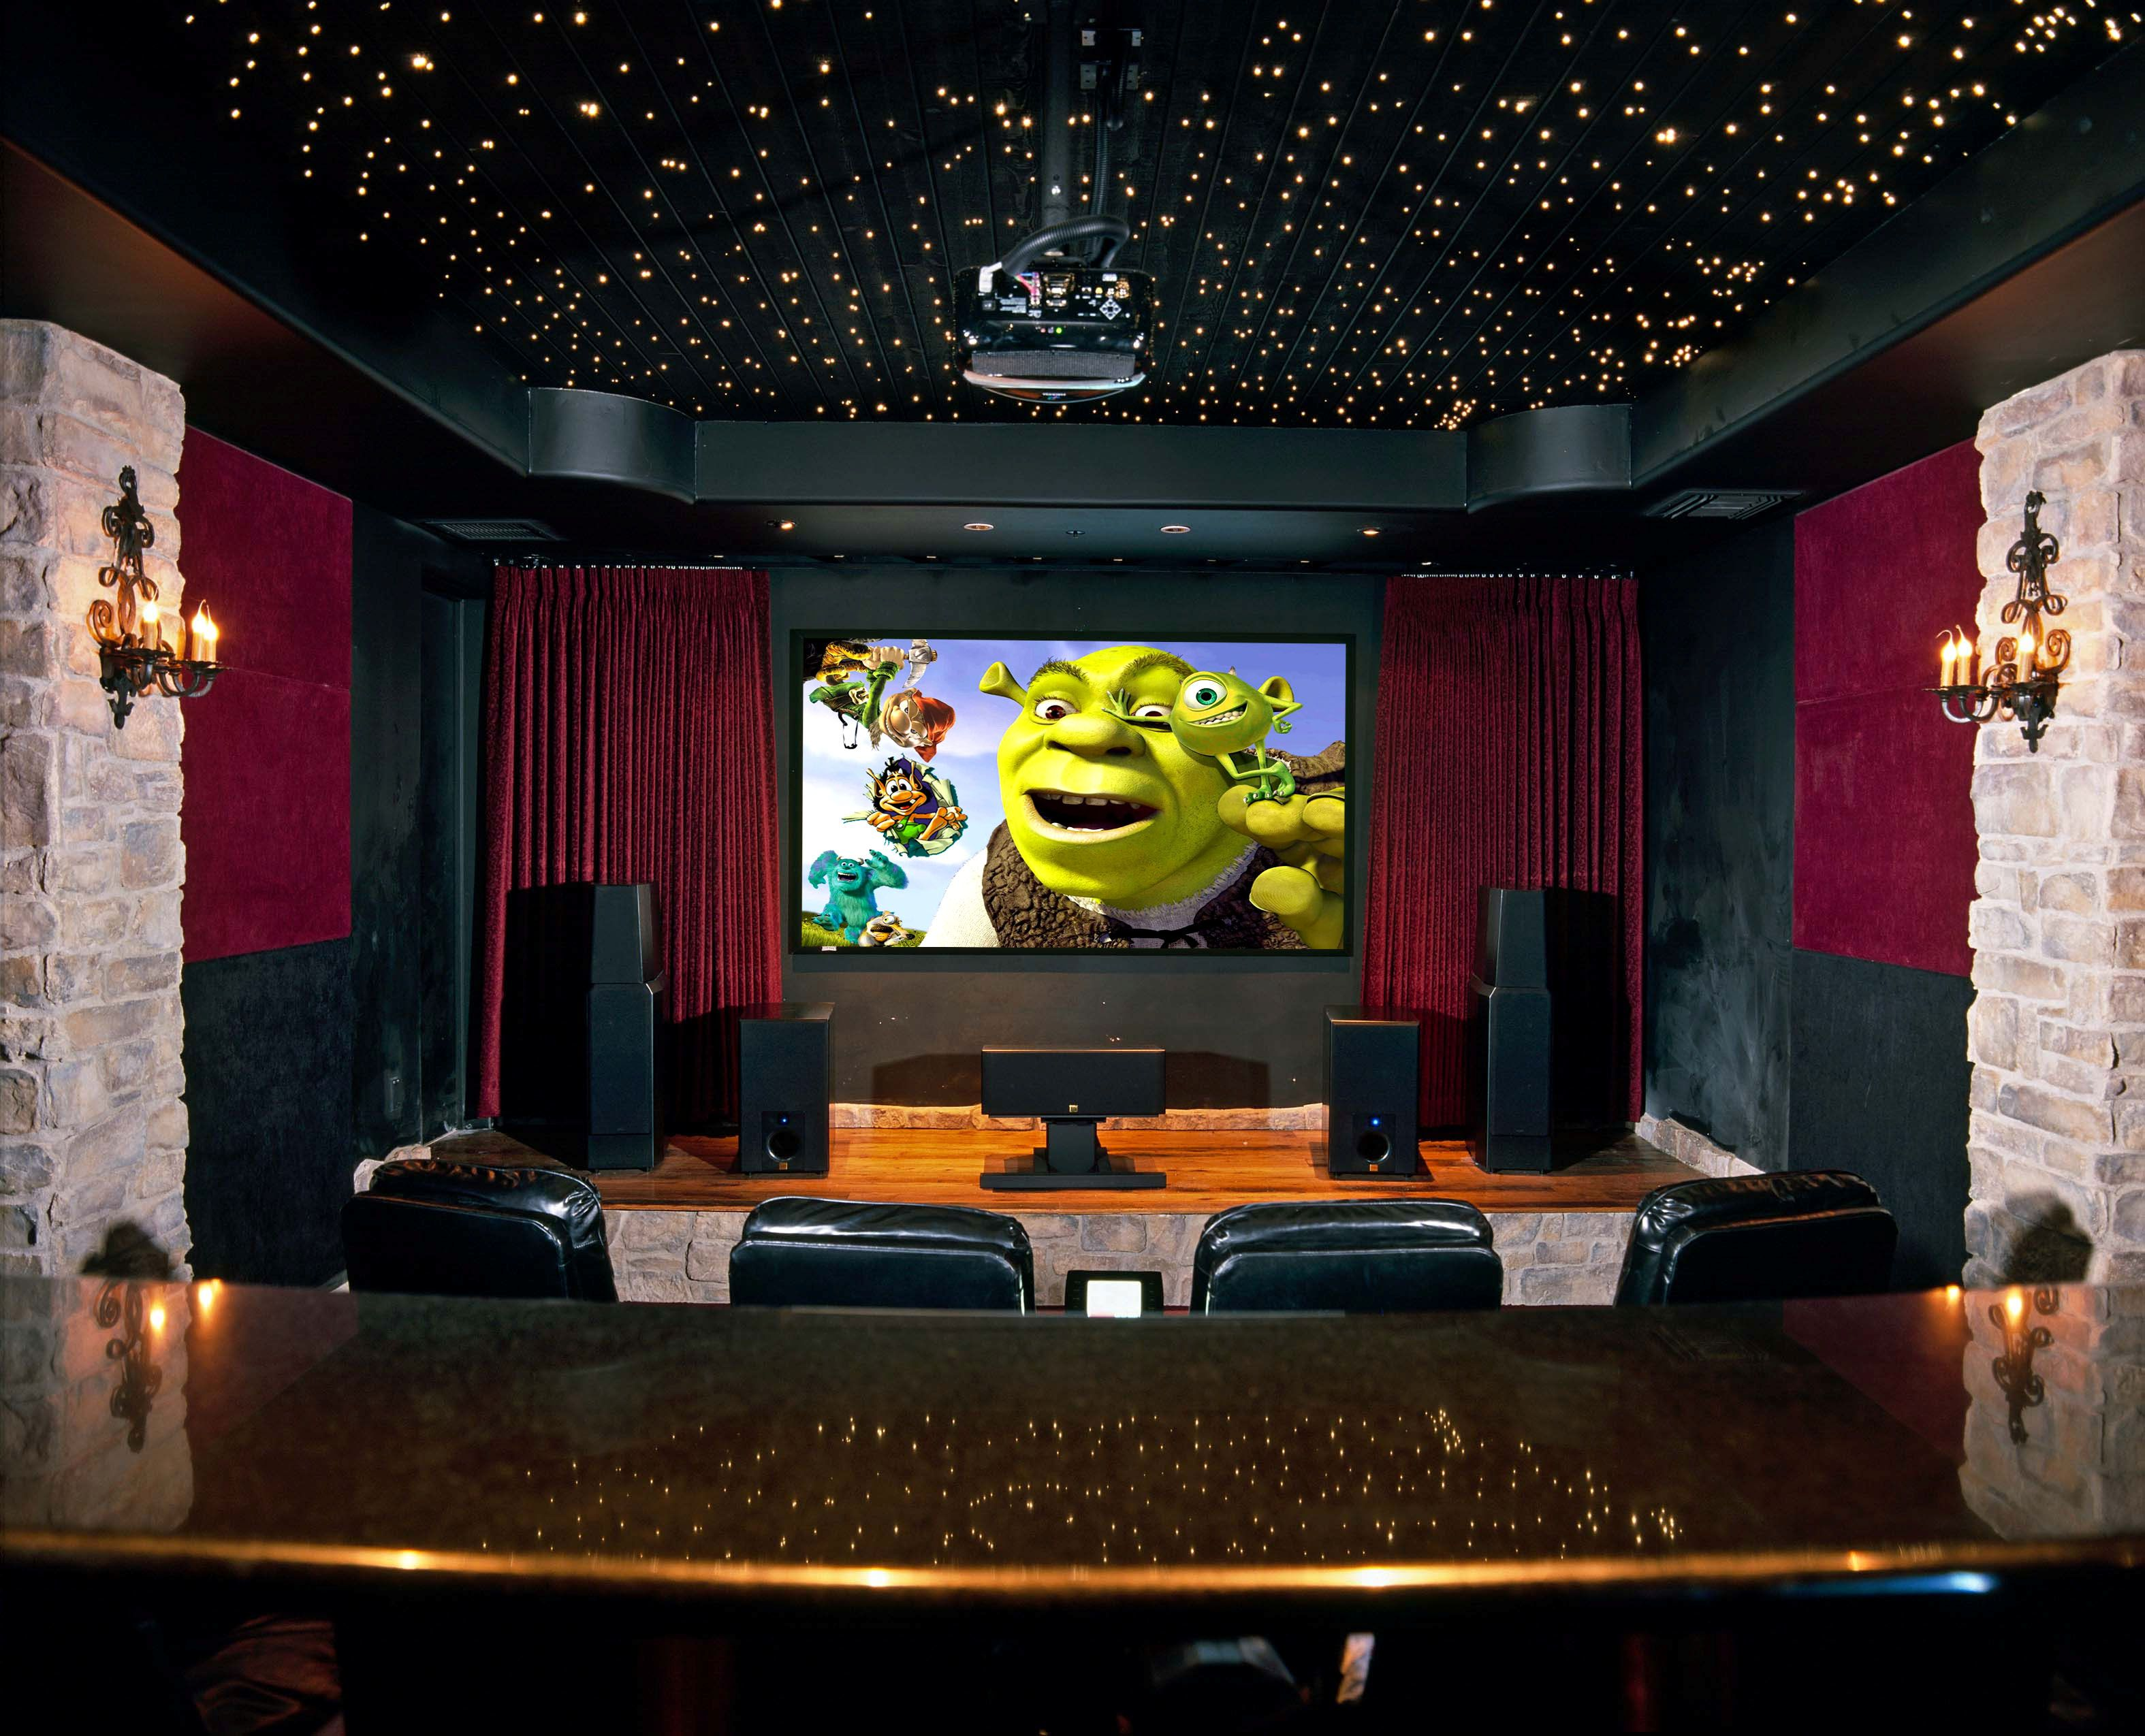 Decorating Beautiful Home Theater Room With Ceiling Design Full Of - Designing home theater